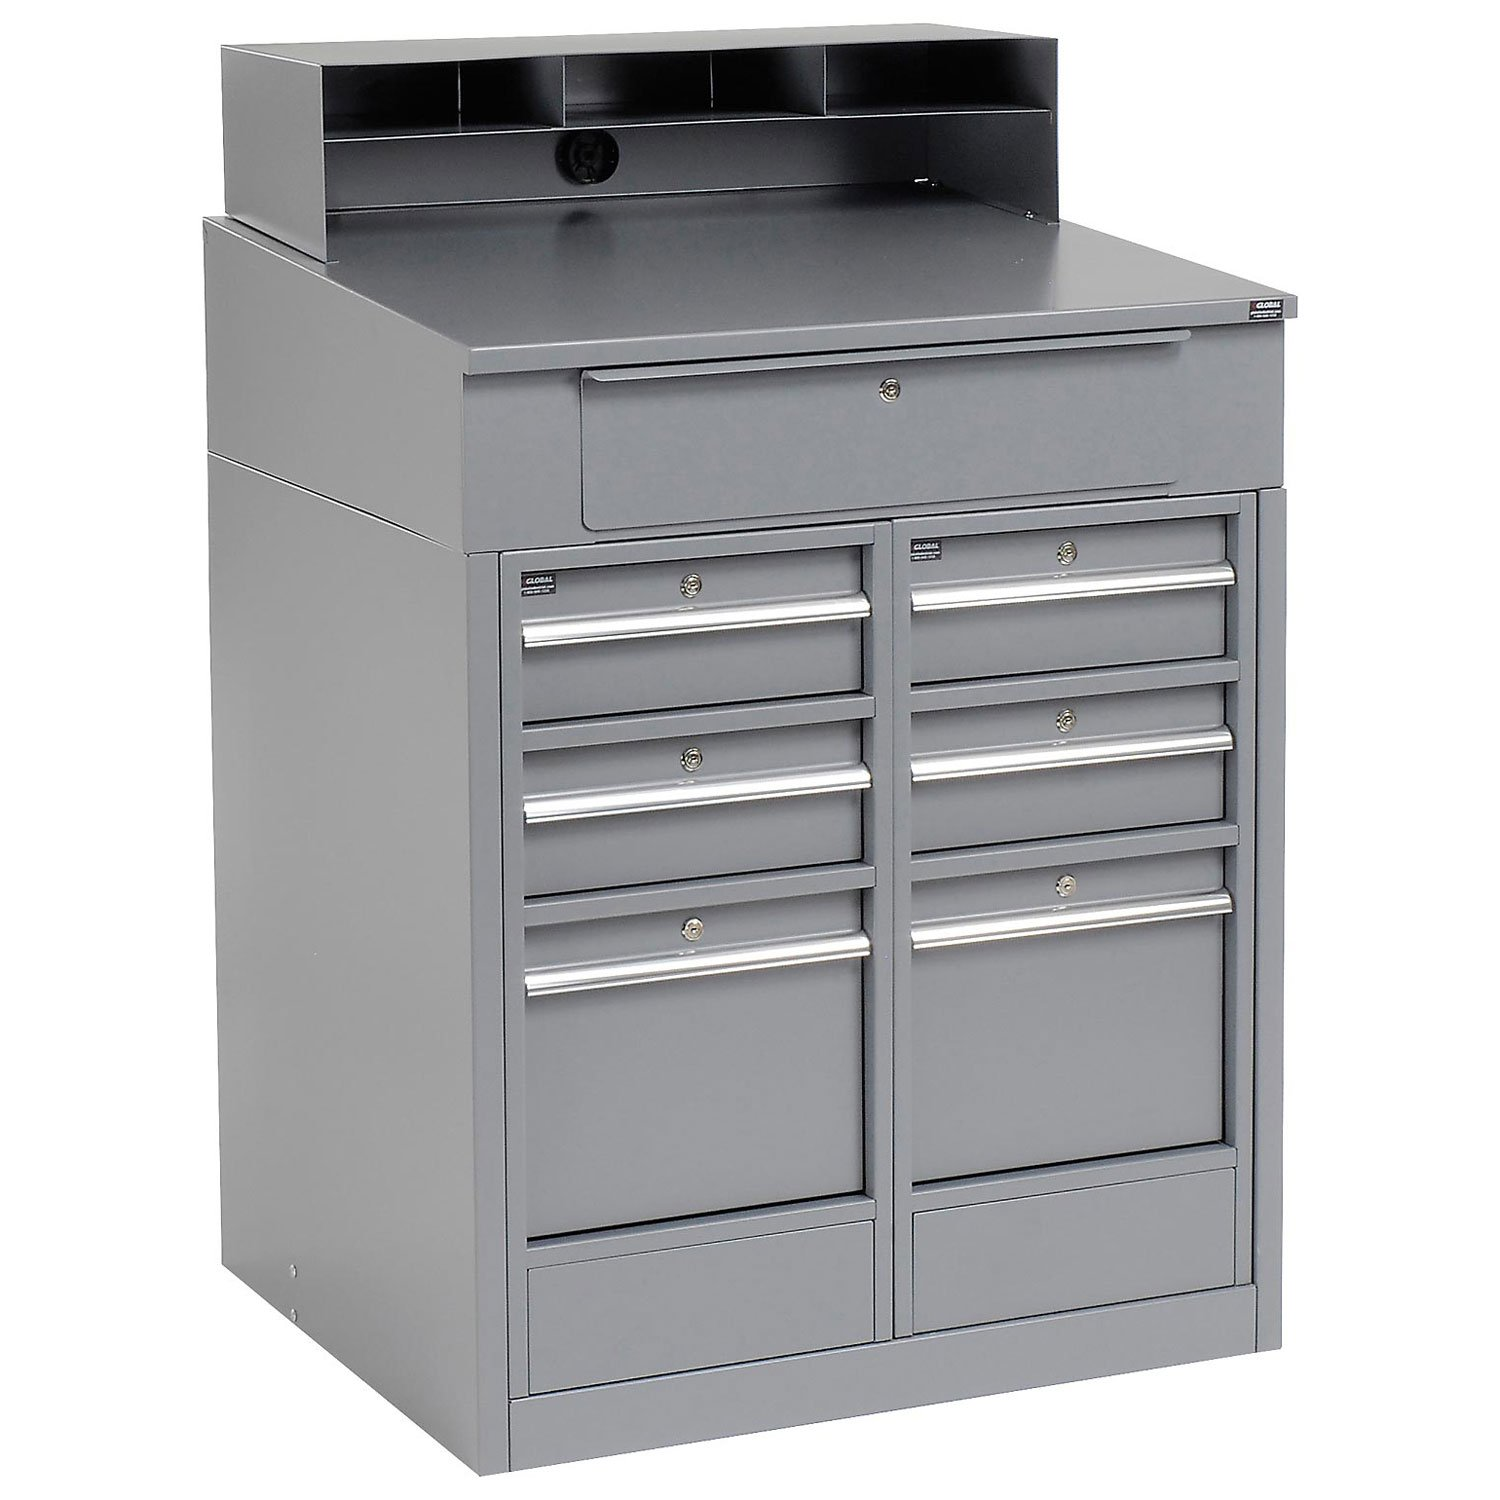 """Shop Desk with 7 Drawers, 34-1/2""""W x 30""""D x 51-1/2""""H, Gray"""